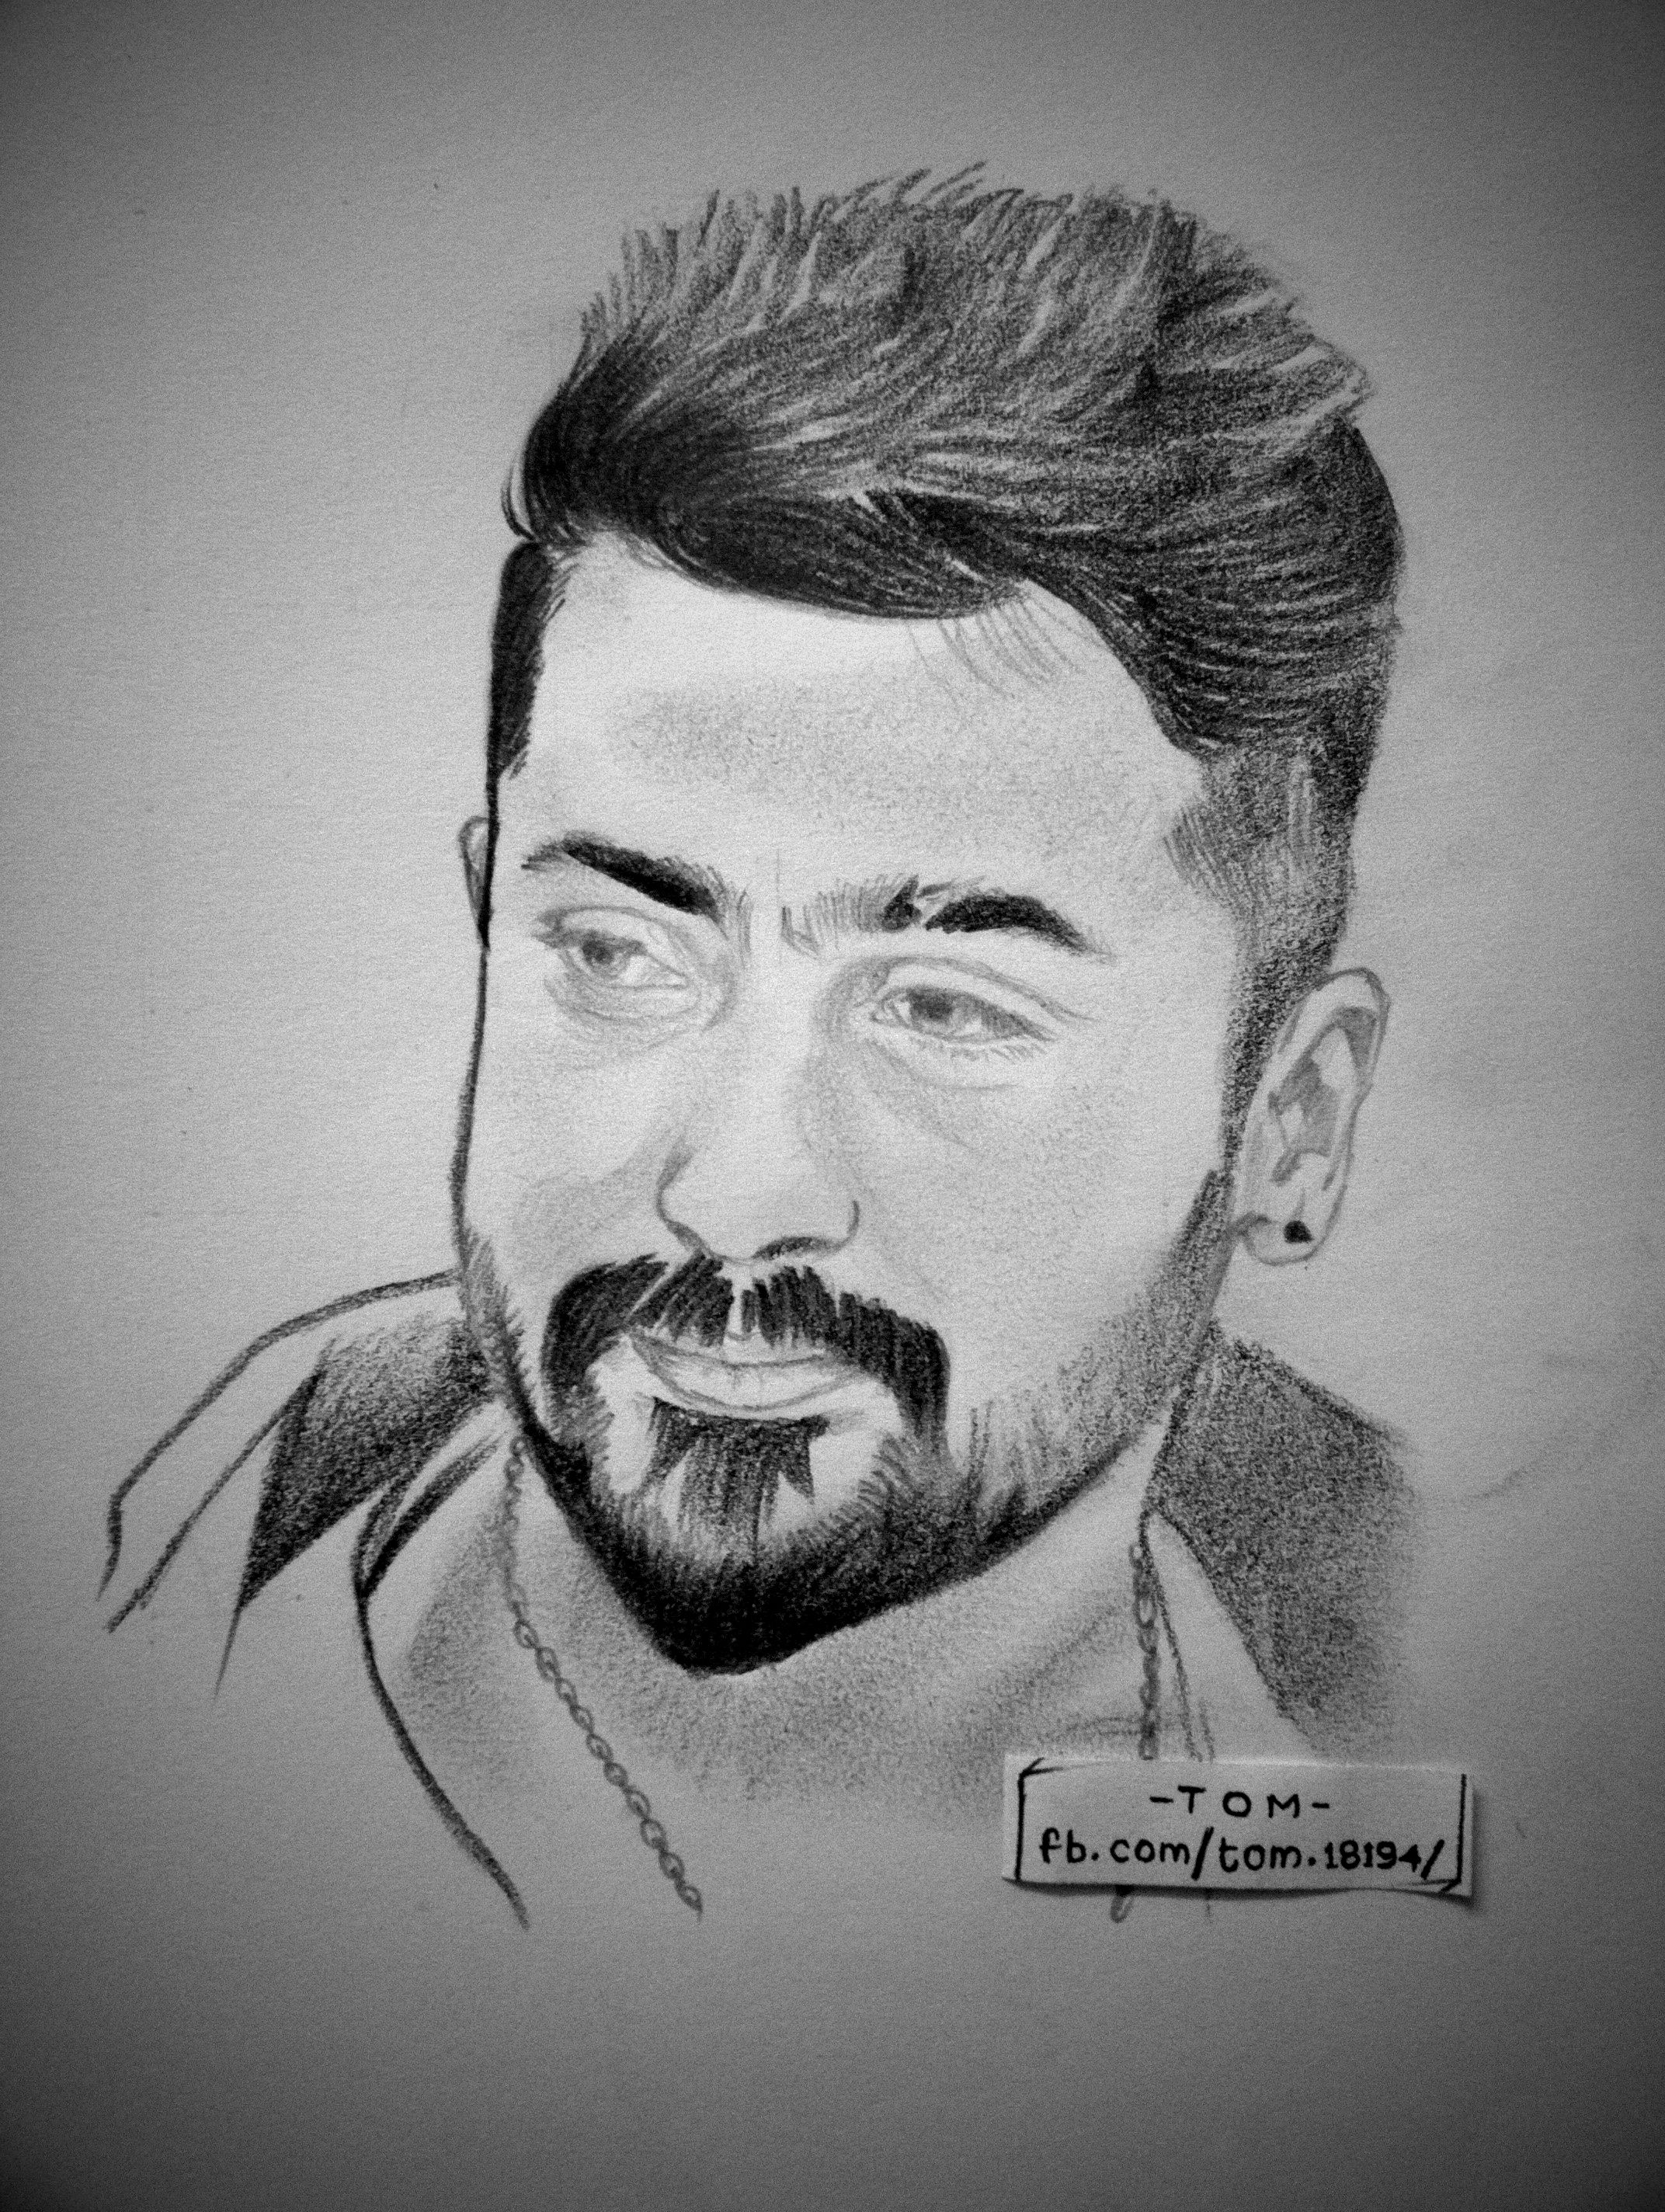 Suriya sivakumar vijay actor my people pakistani graphite bollywood graffiti